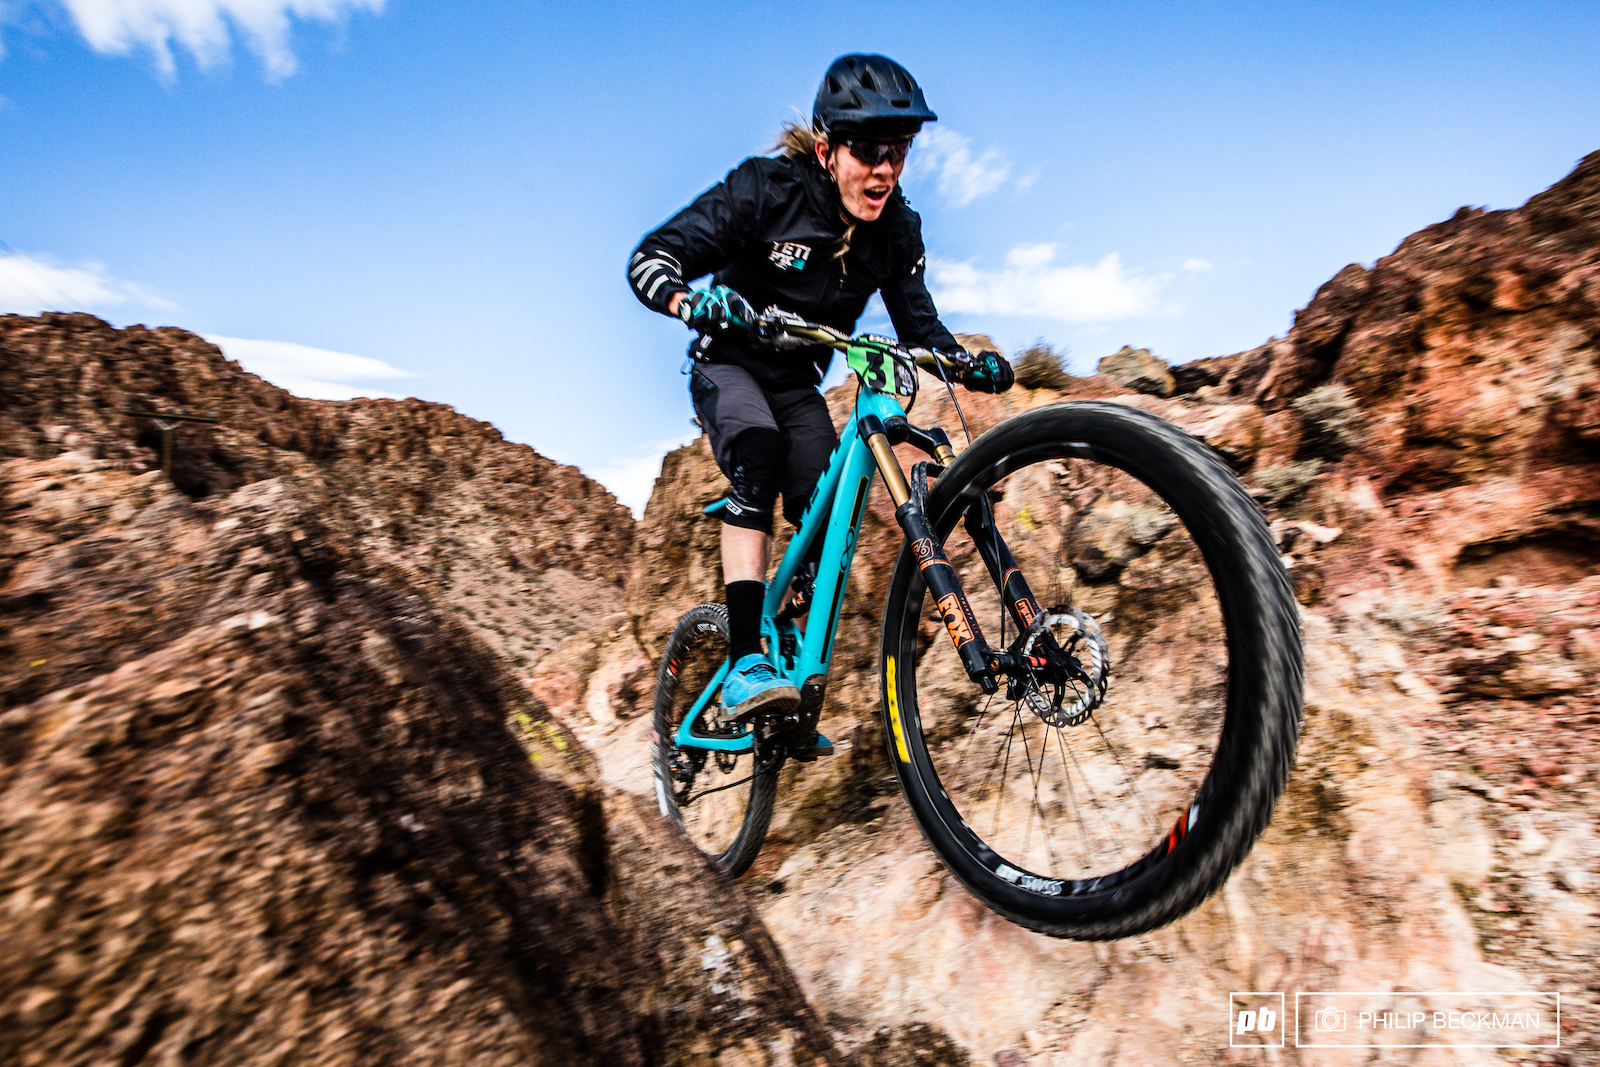 Riverton Utah s Cody Kelley Yeti Cycles blitzed the Super D course with a 8 52.08.